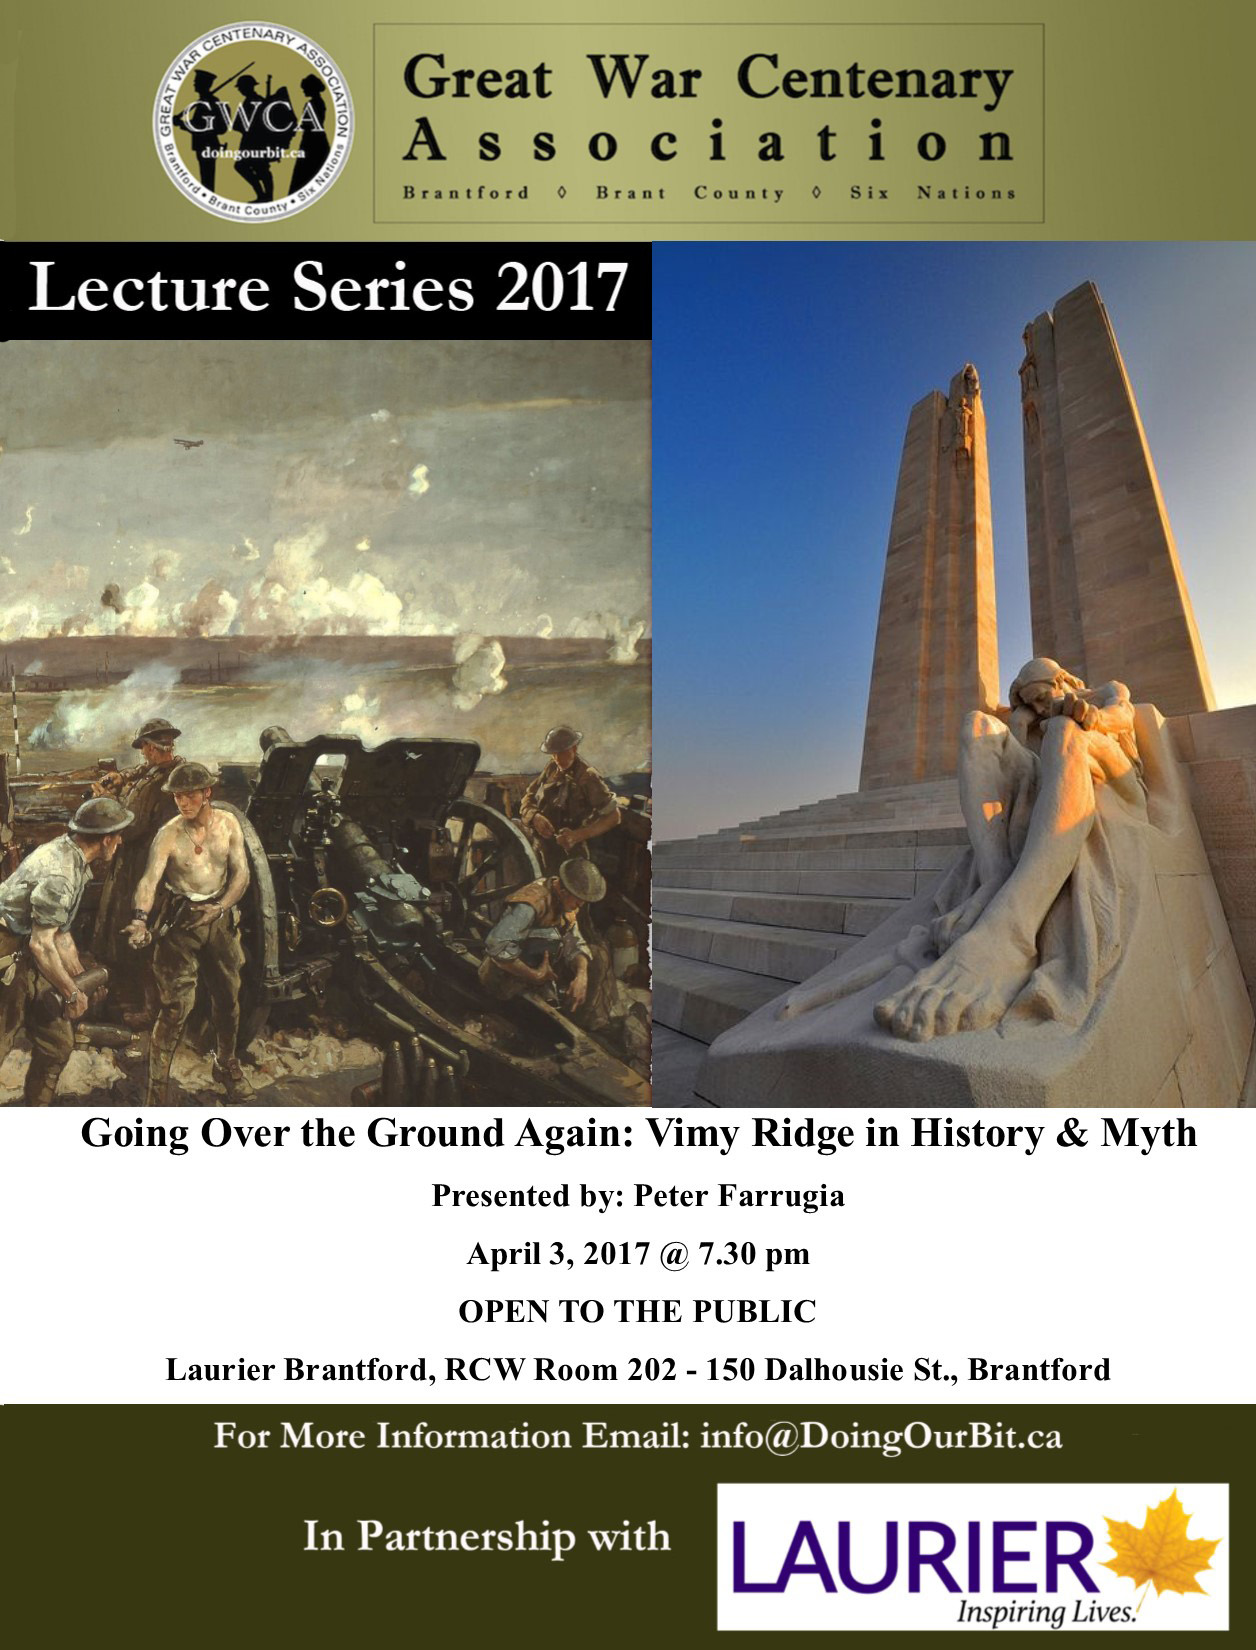 Vimy Ridge in History and Myth - Peter Farrugia Doing our Bit